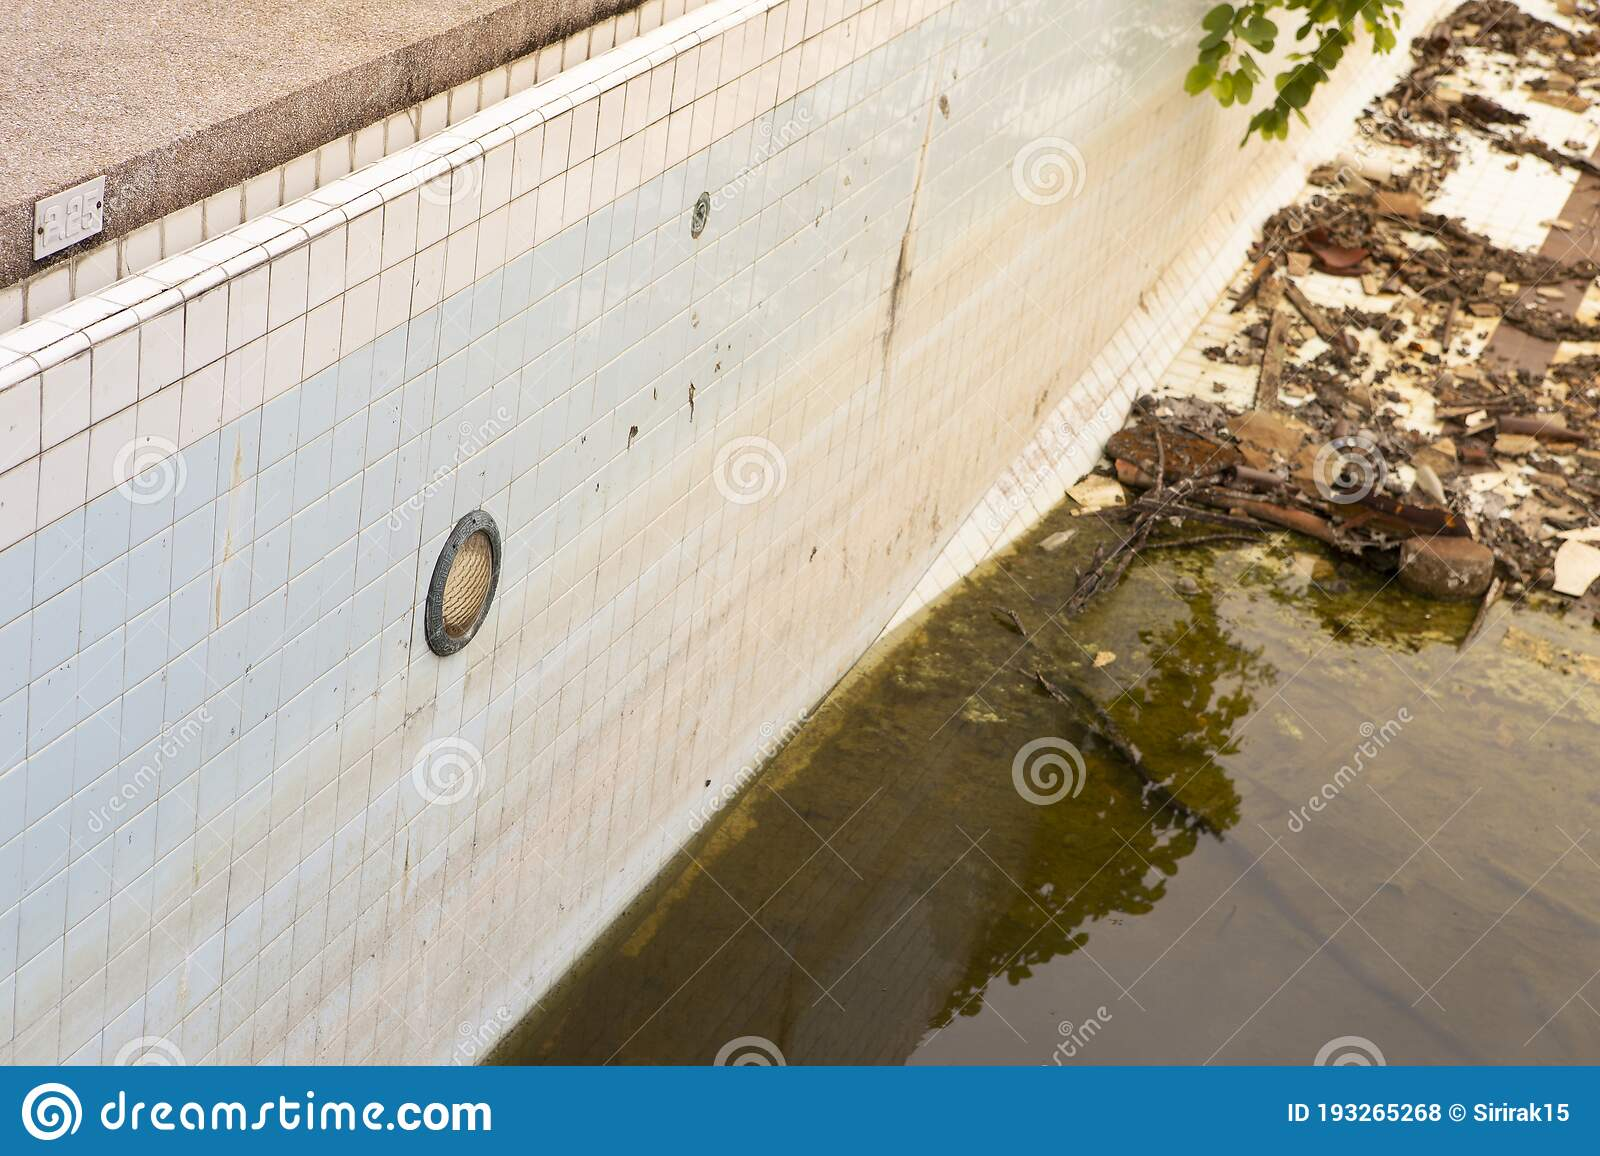 Abandoned Swimming Pool With Dirty Water And Garbage Stock Photo Image Of Rusty Algae 193265268